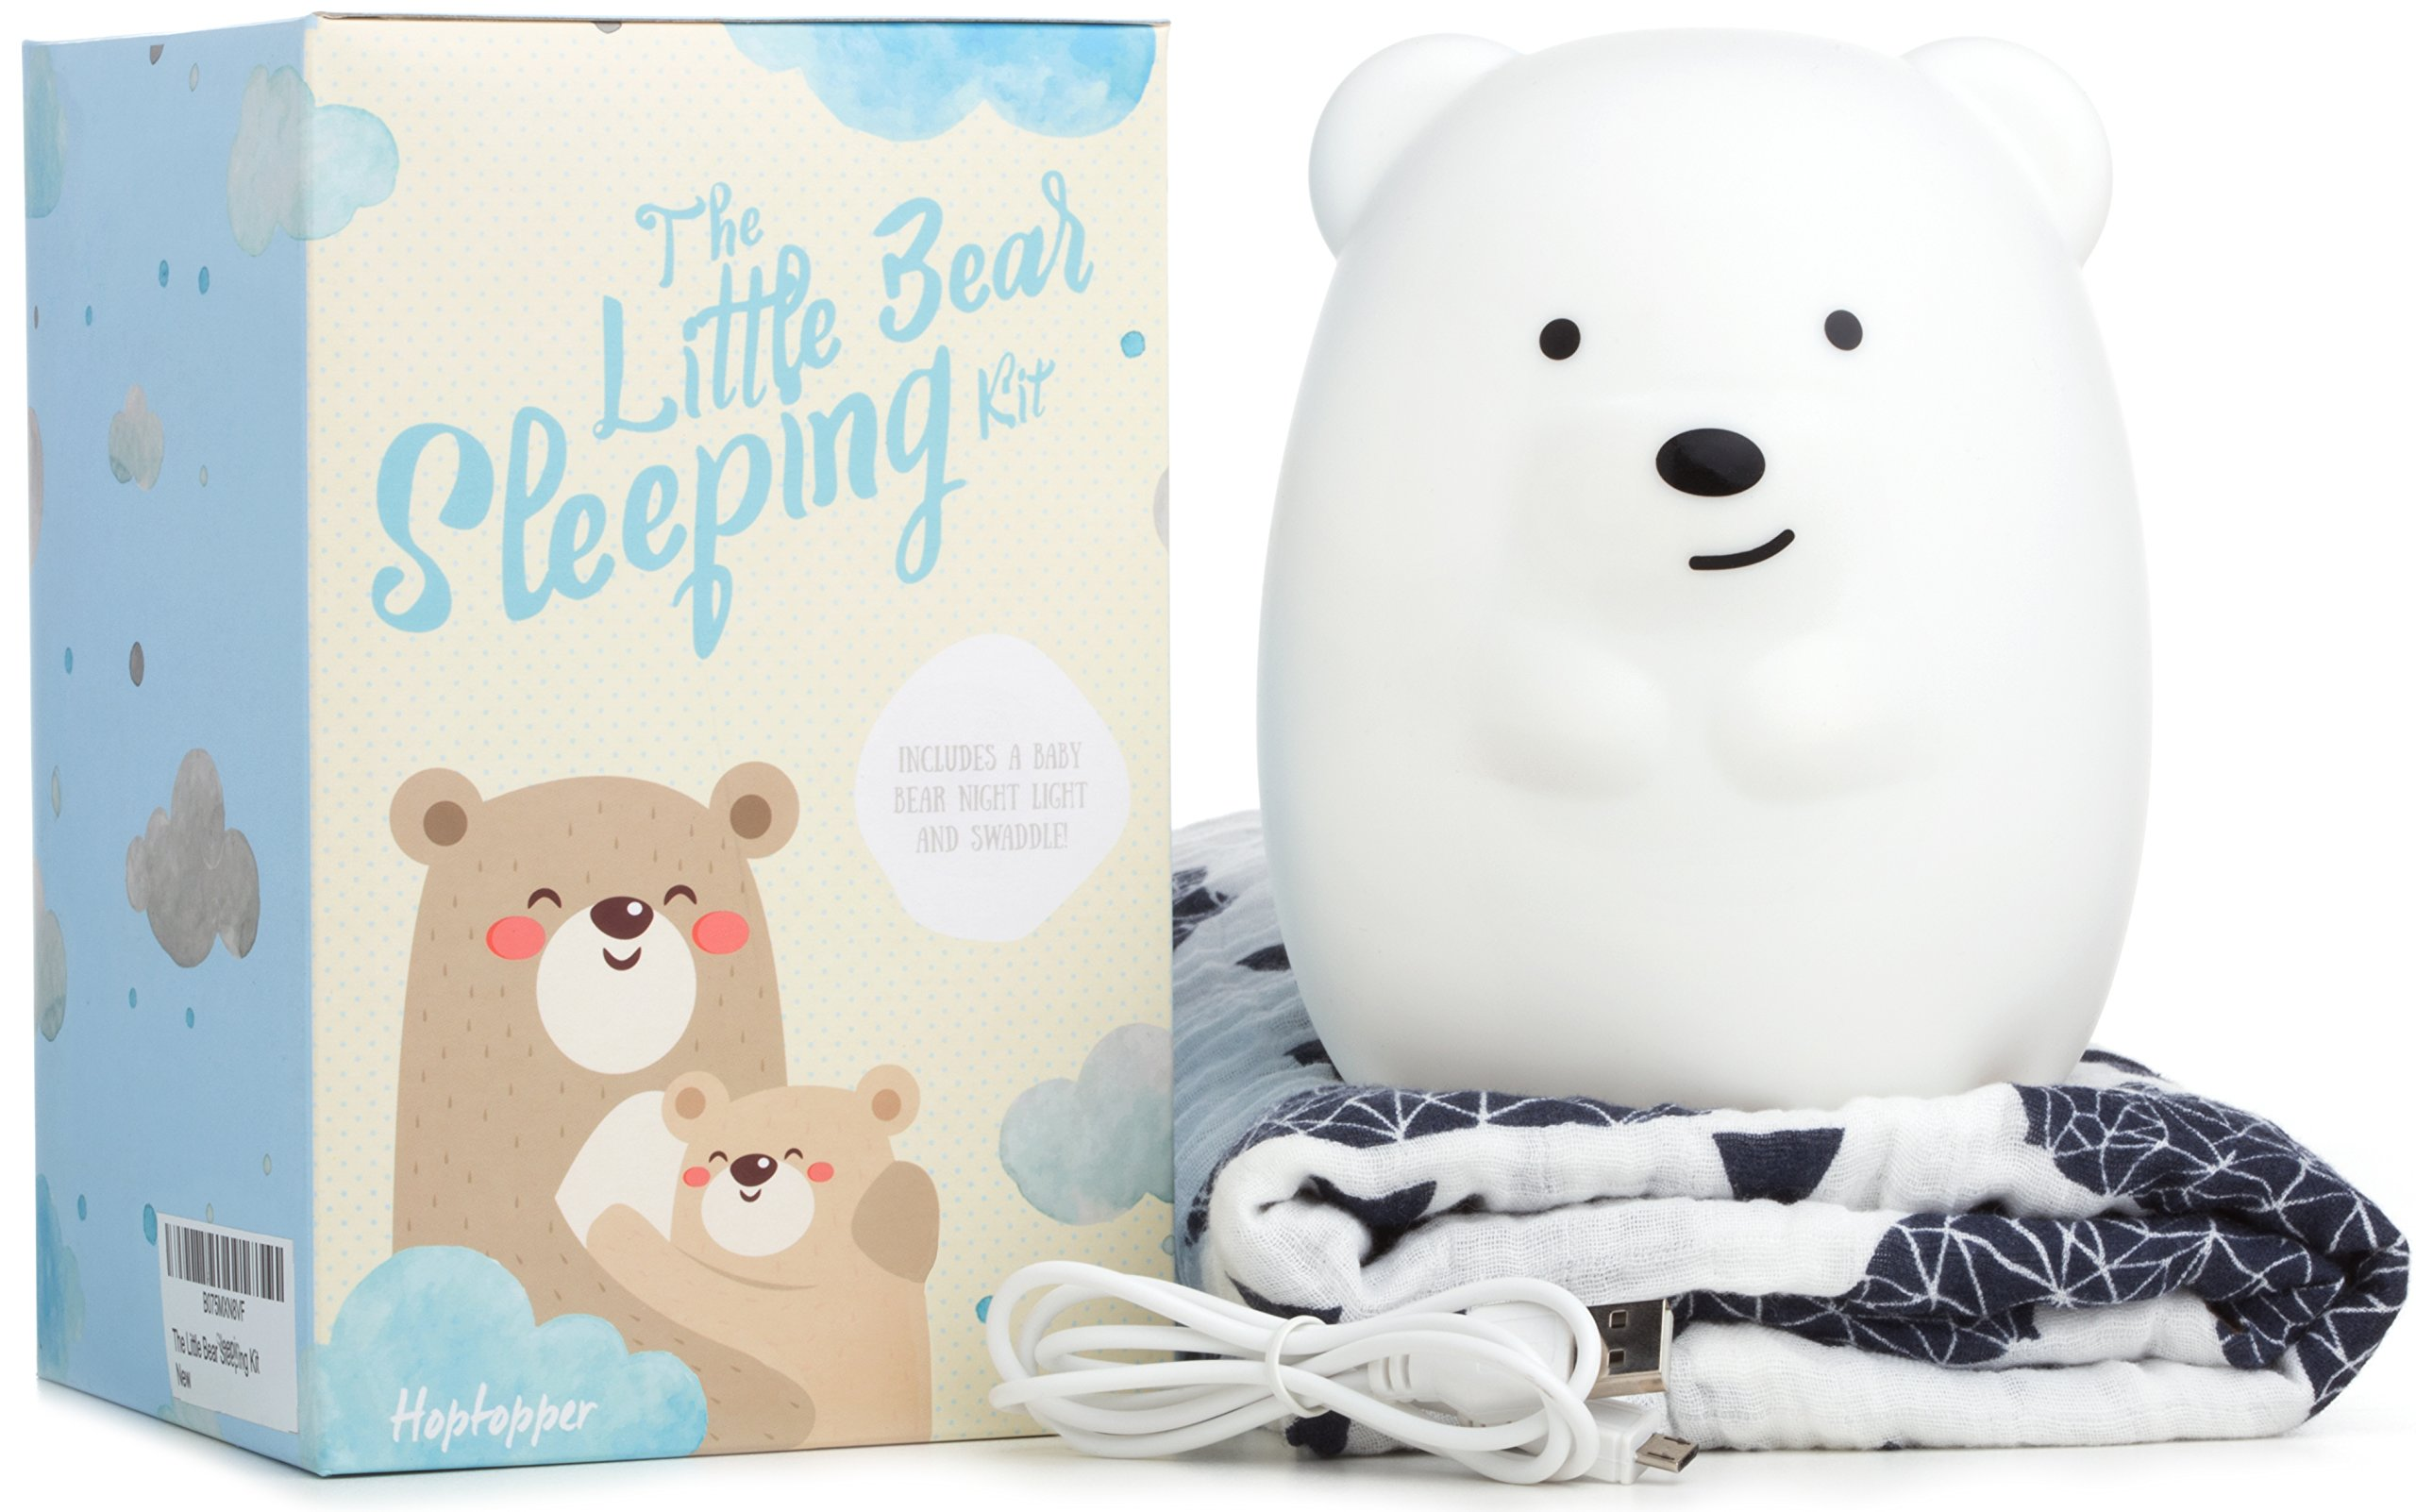 Baby Night Light + Swaddle Adjustable Muslin Blanket Great Gift For Baby Showers The Little Bear Sleeping Kit by Hoptopper